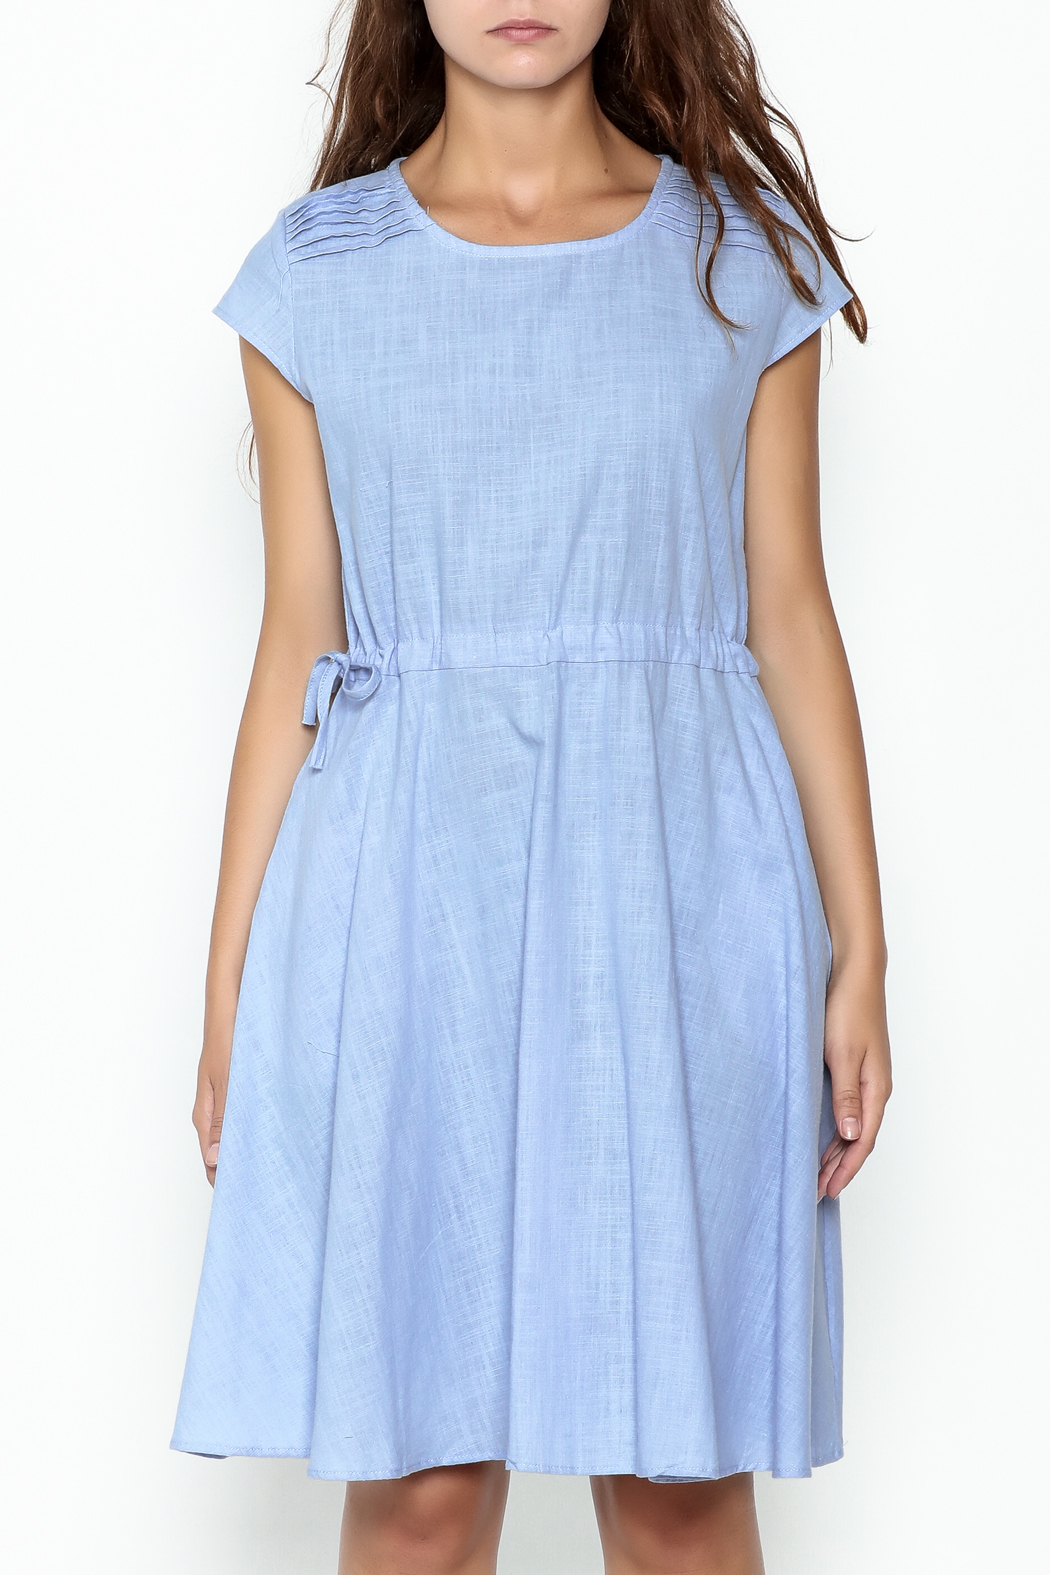 Fashion Pickle Sky Blue Dress - Front Full Image